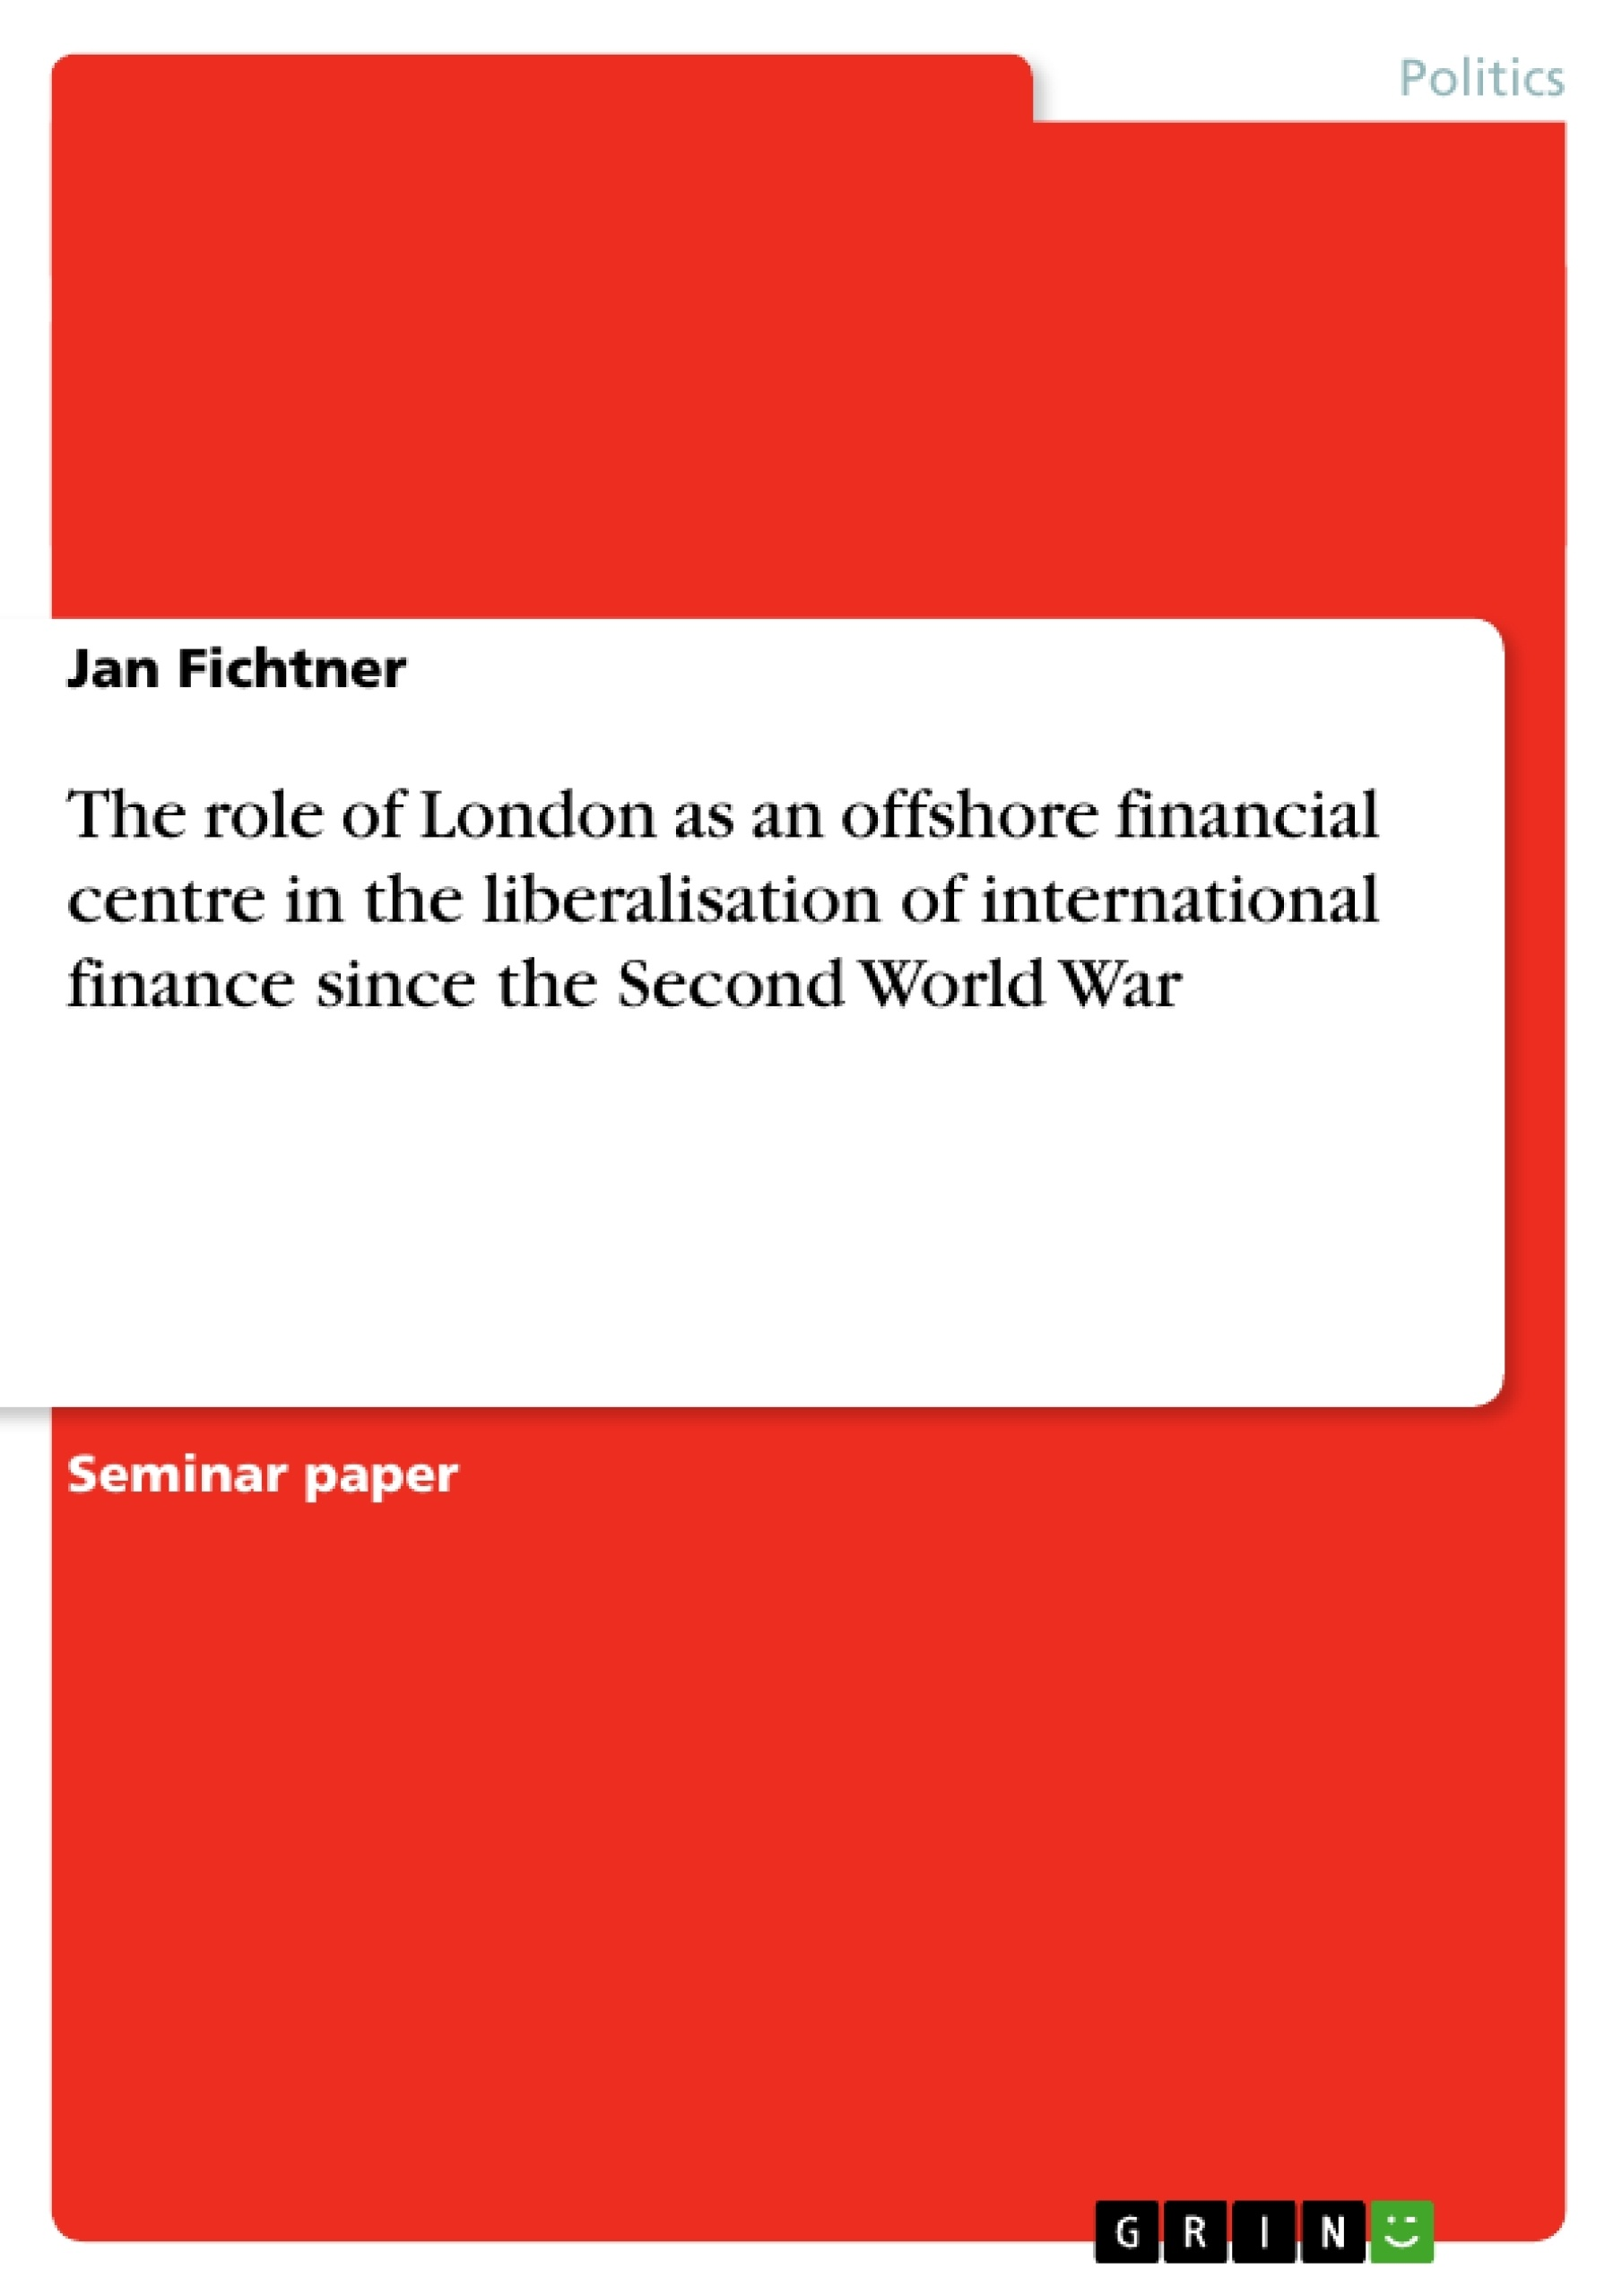 thesis on offshore financial centers